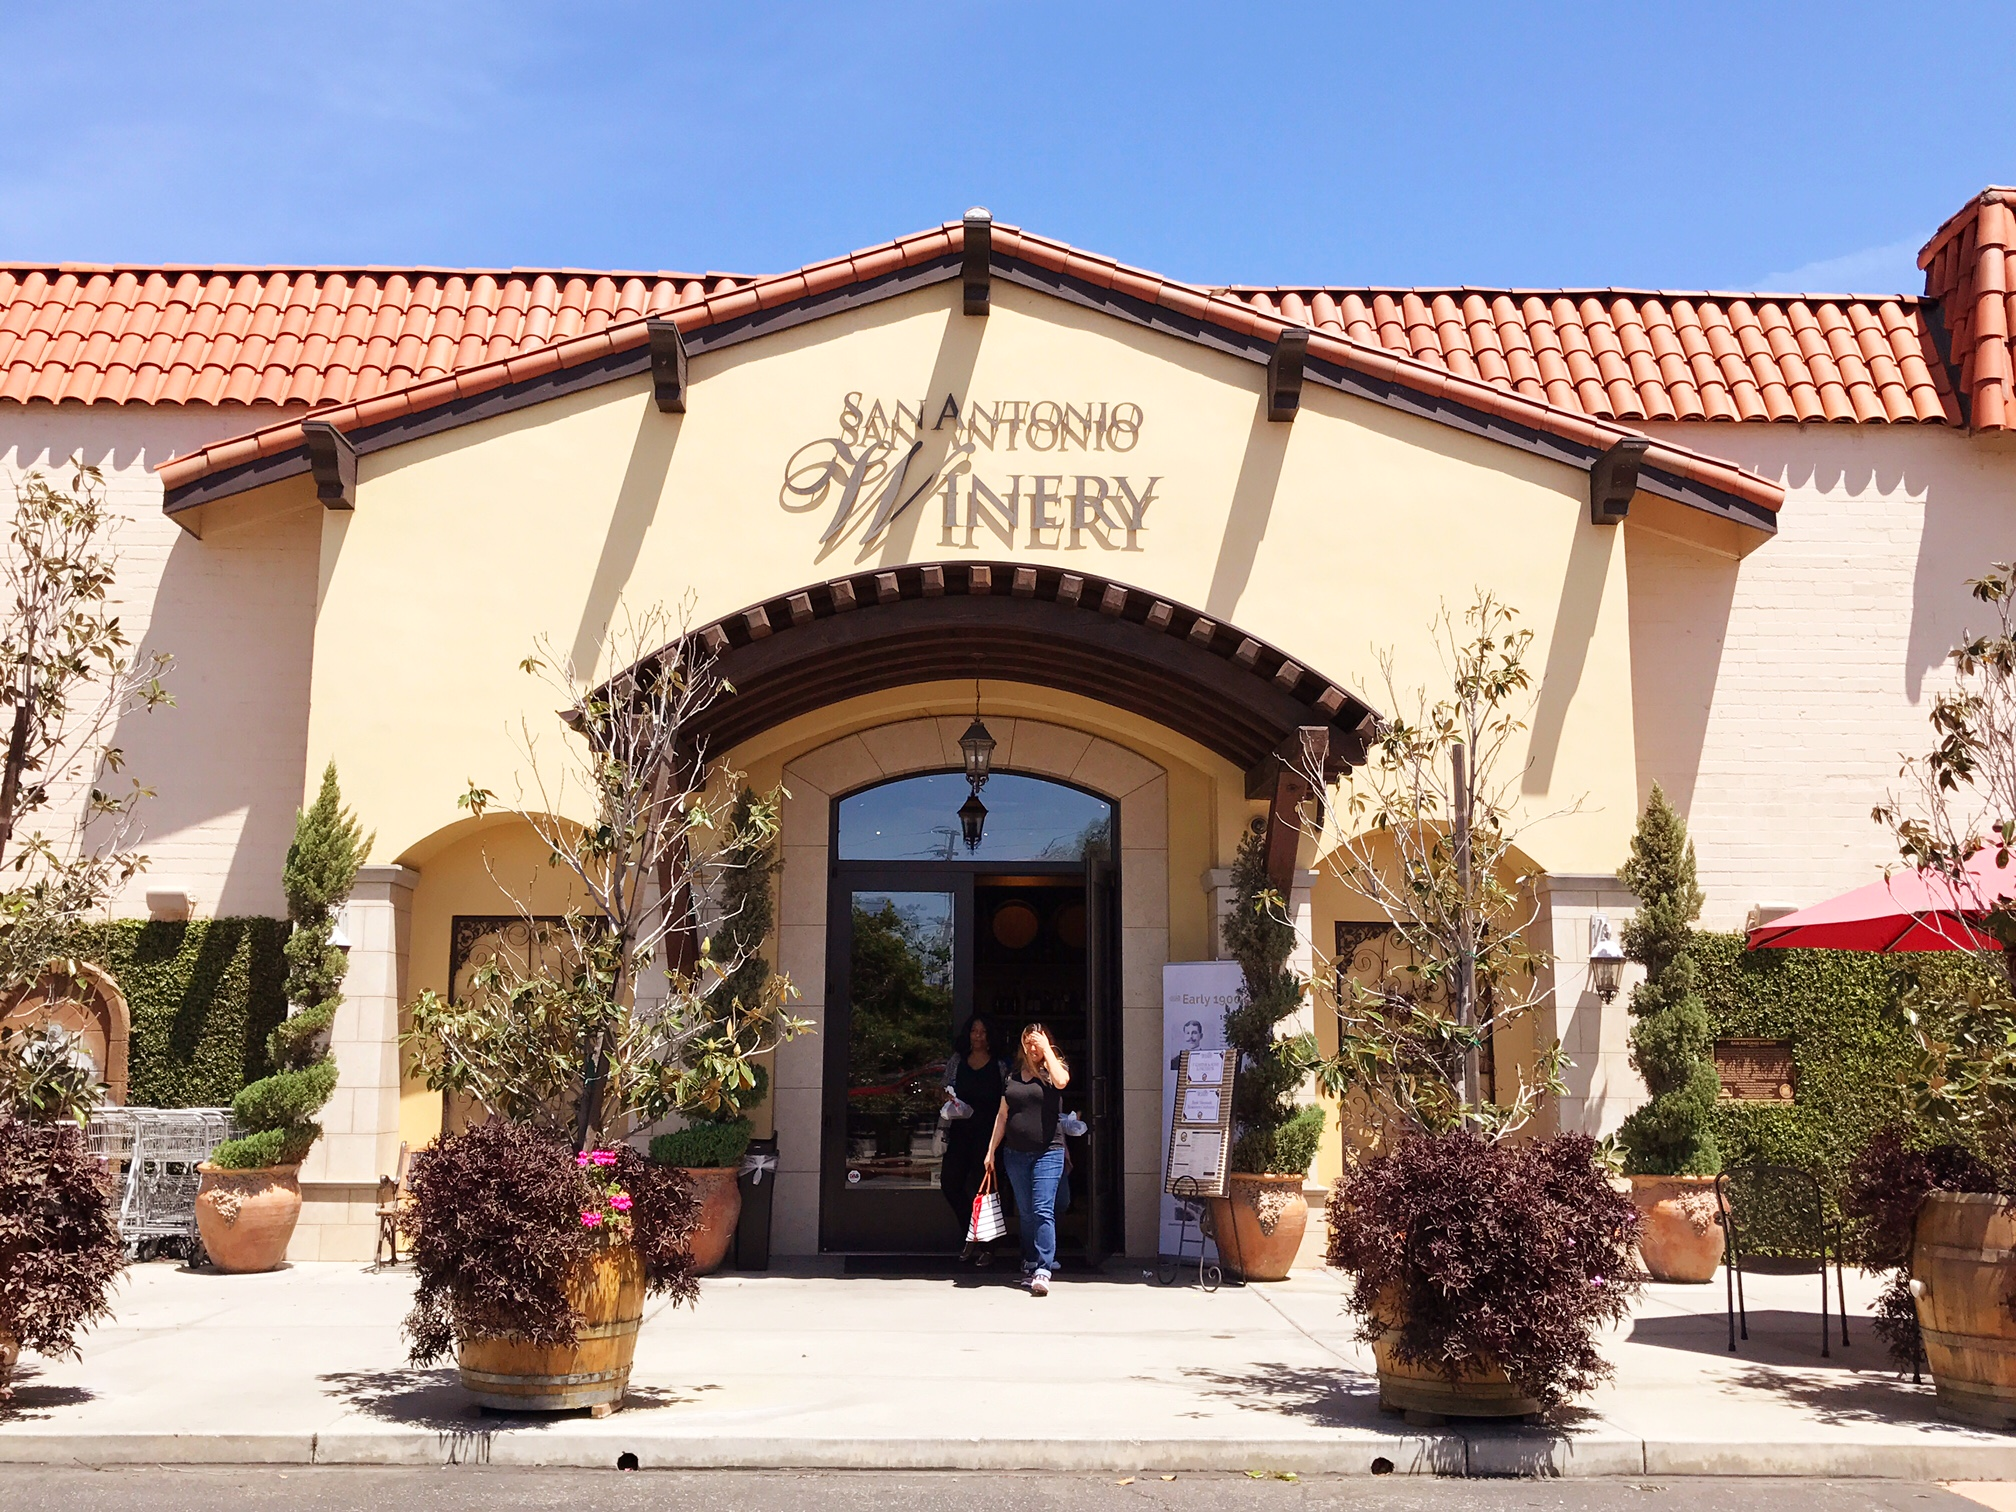 Visiting San Antonio Winery in Downtown Los Angeles